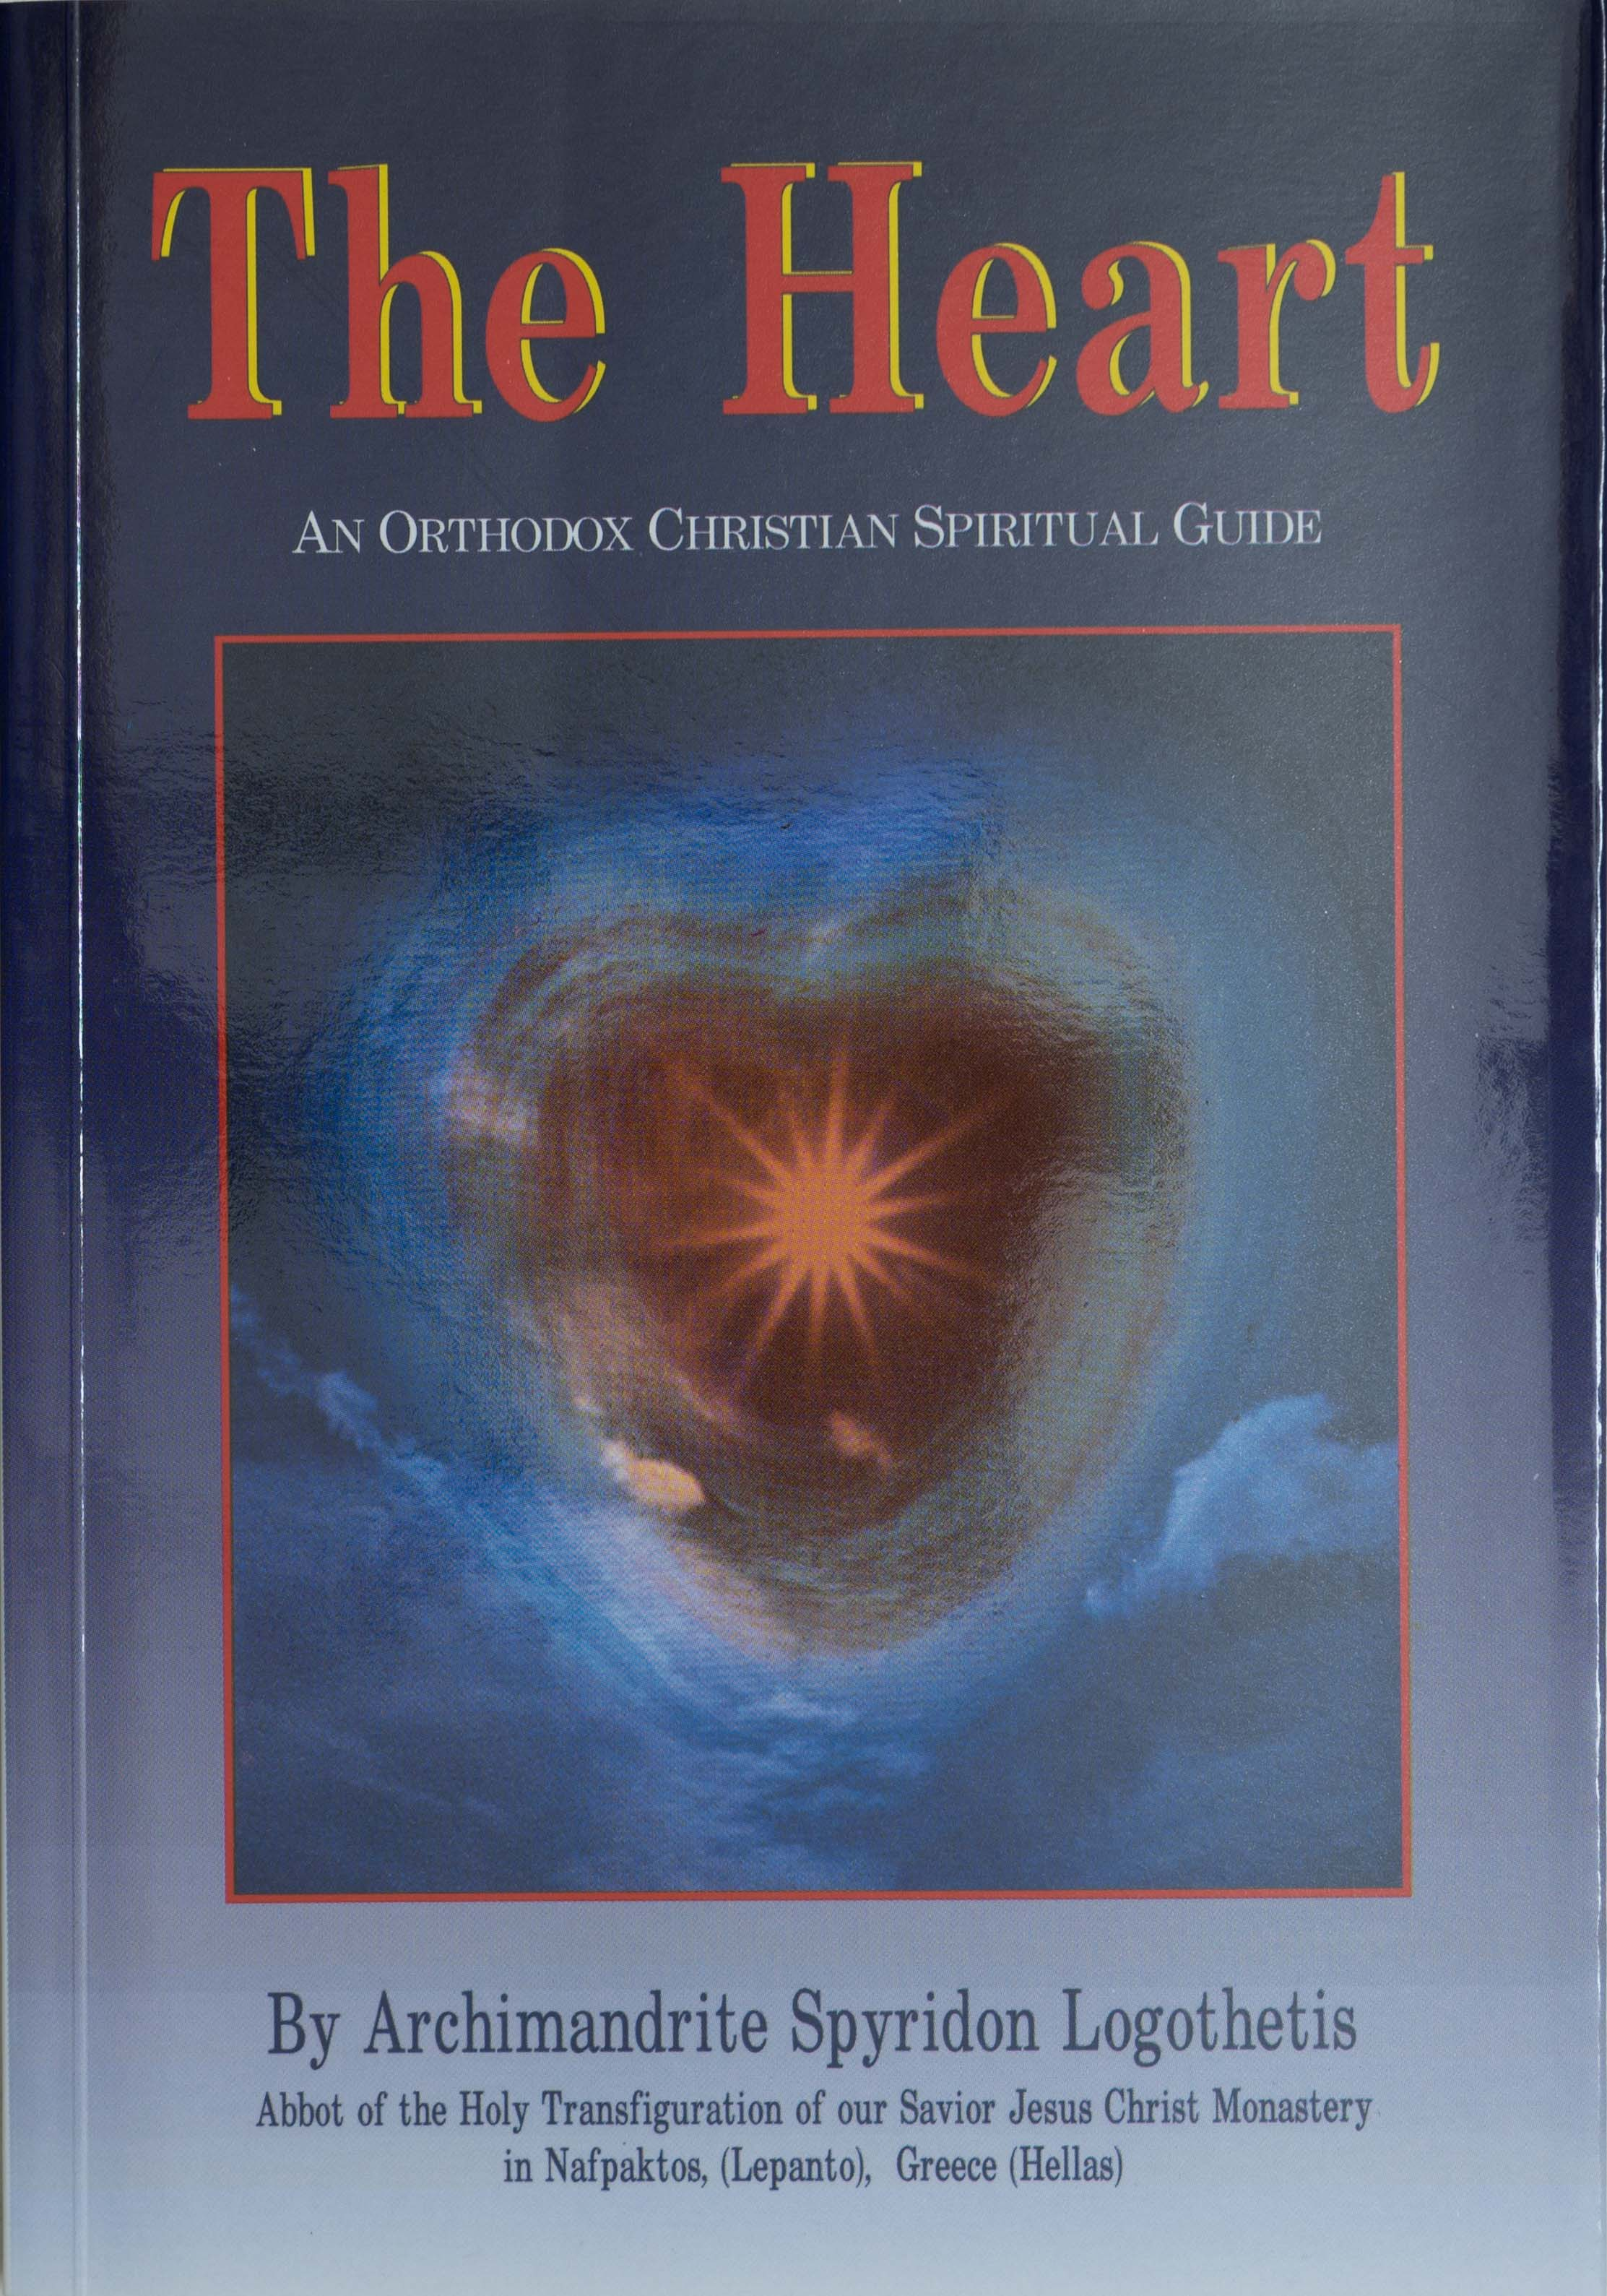 The Heart: An Orthodox Christian Spiritual Guide